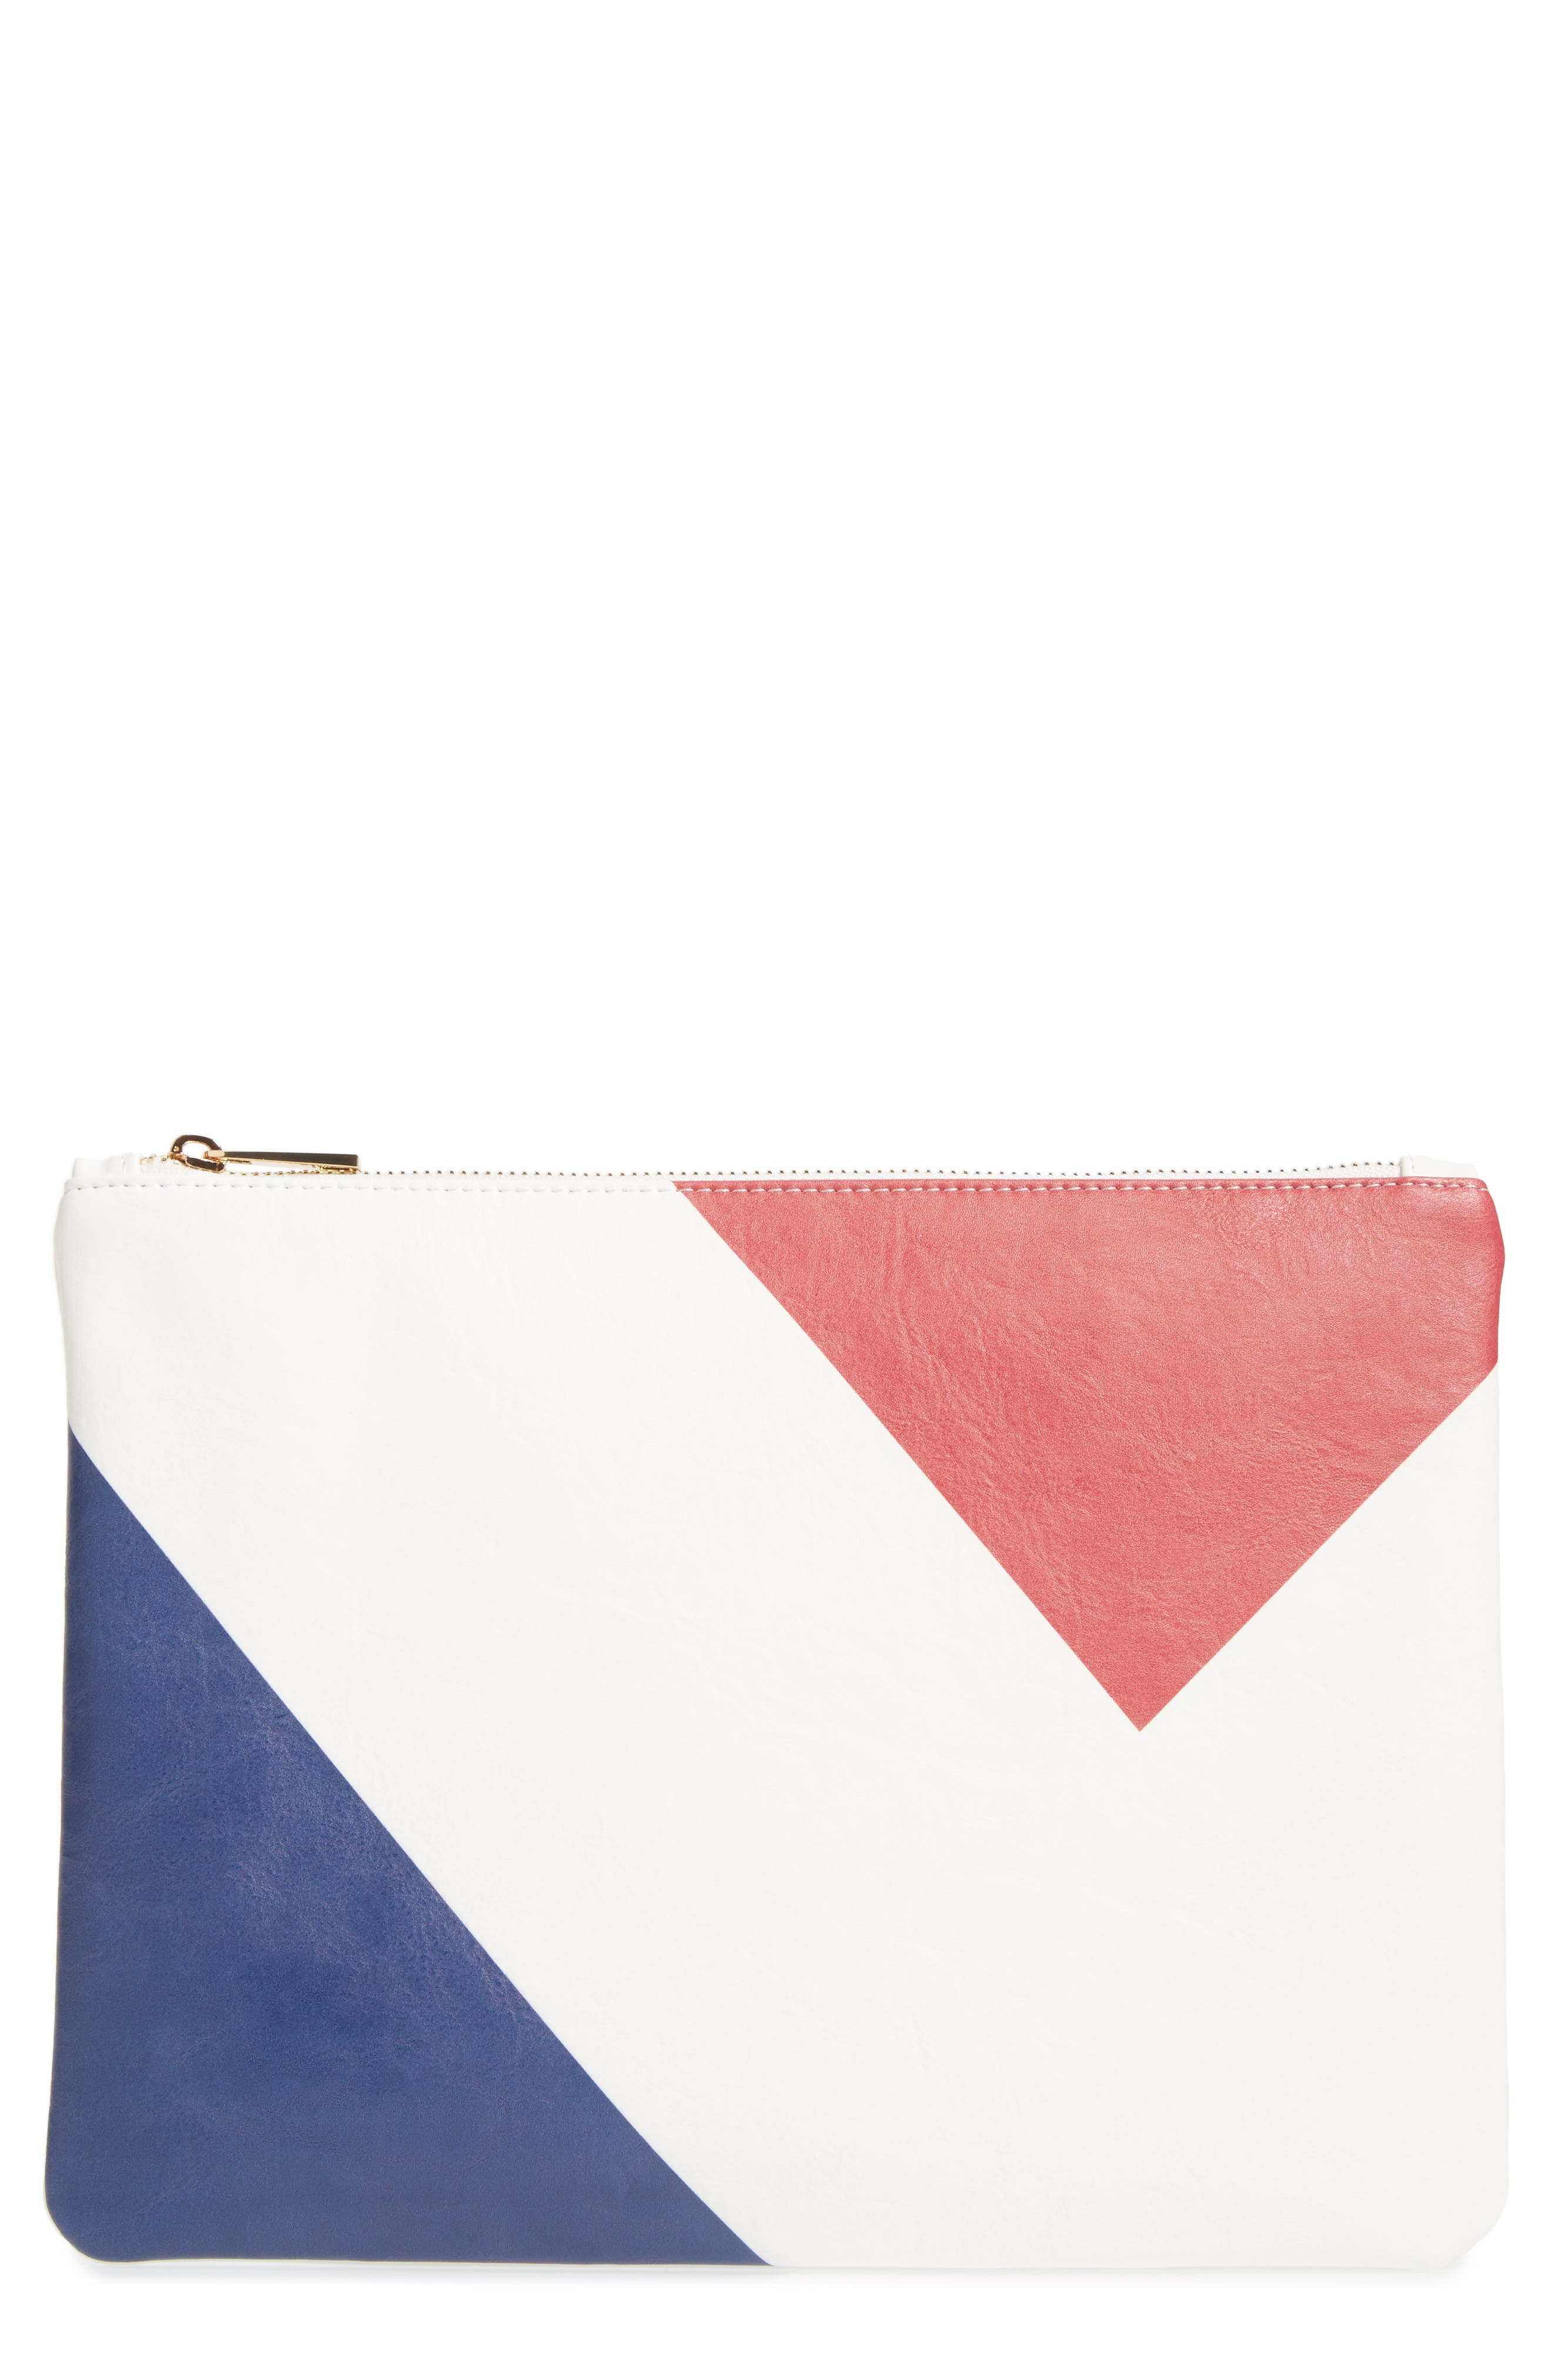 Alternate Image 1 Selected - BP. Graphic Zip Pouch